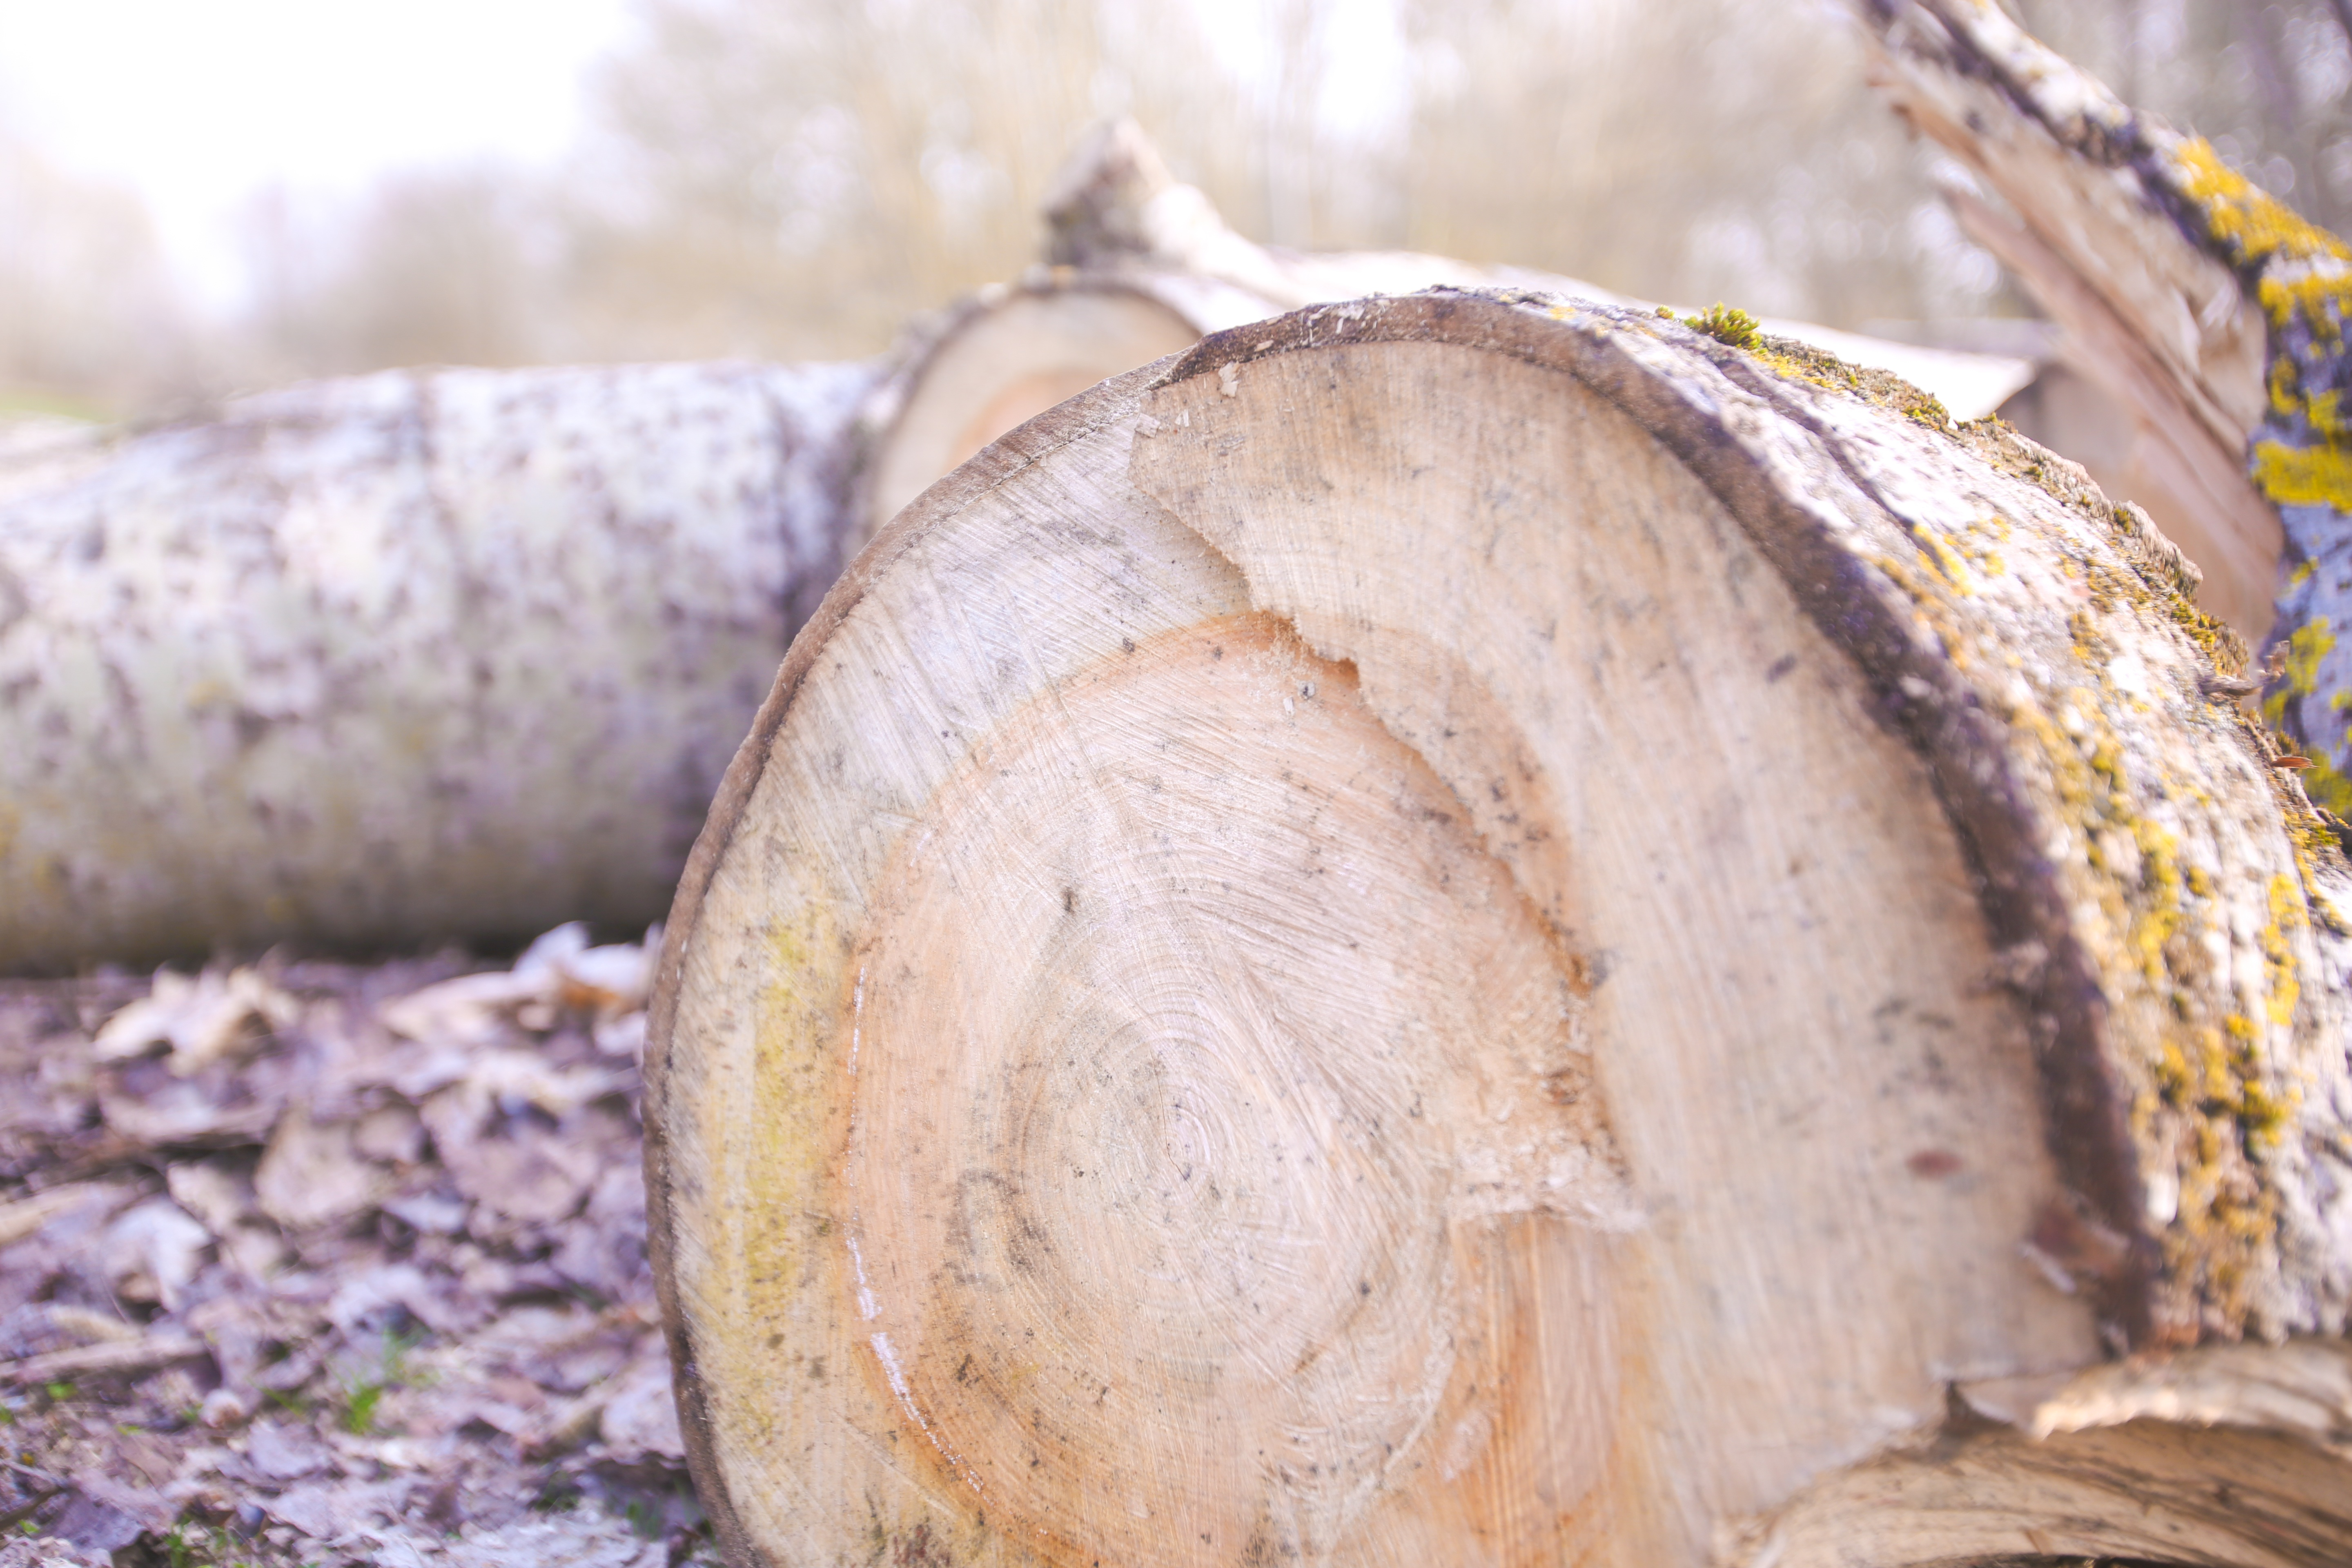 Wood, Work, Forest, Cutting, Factory, HQ Photo